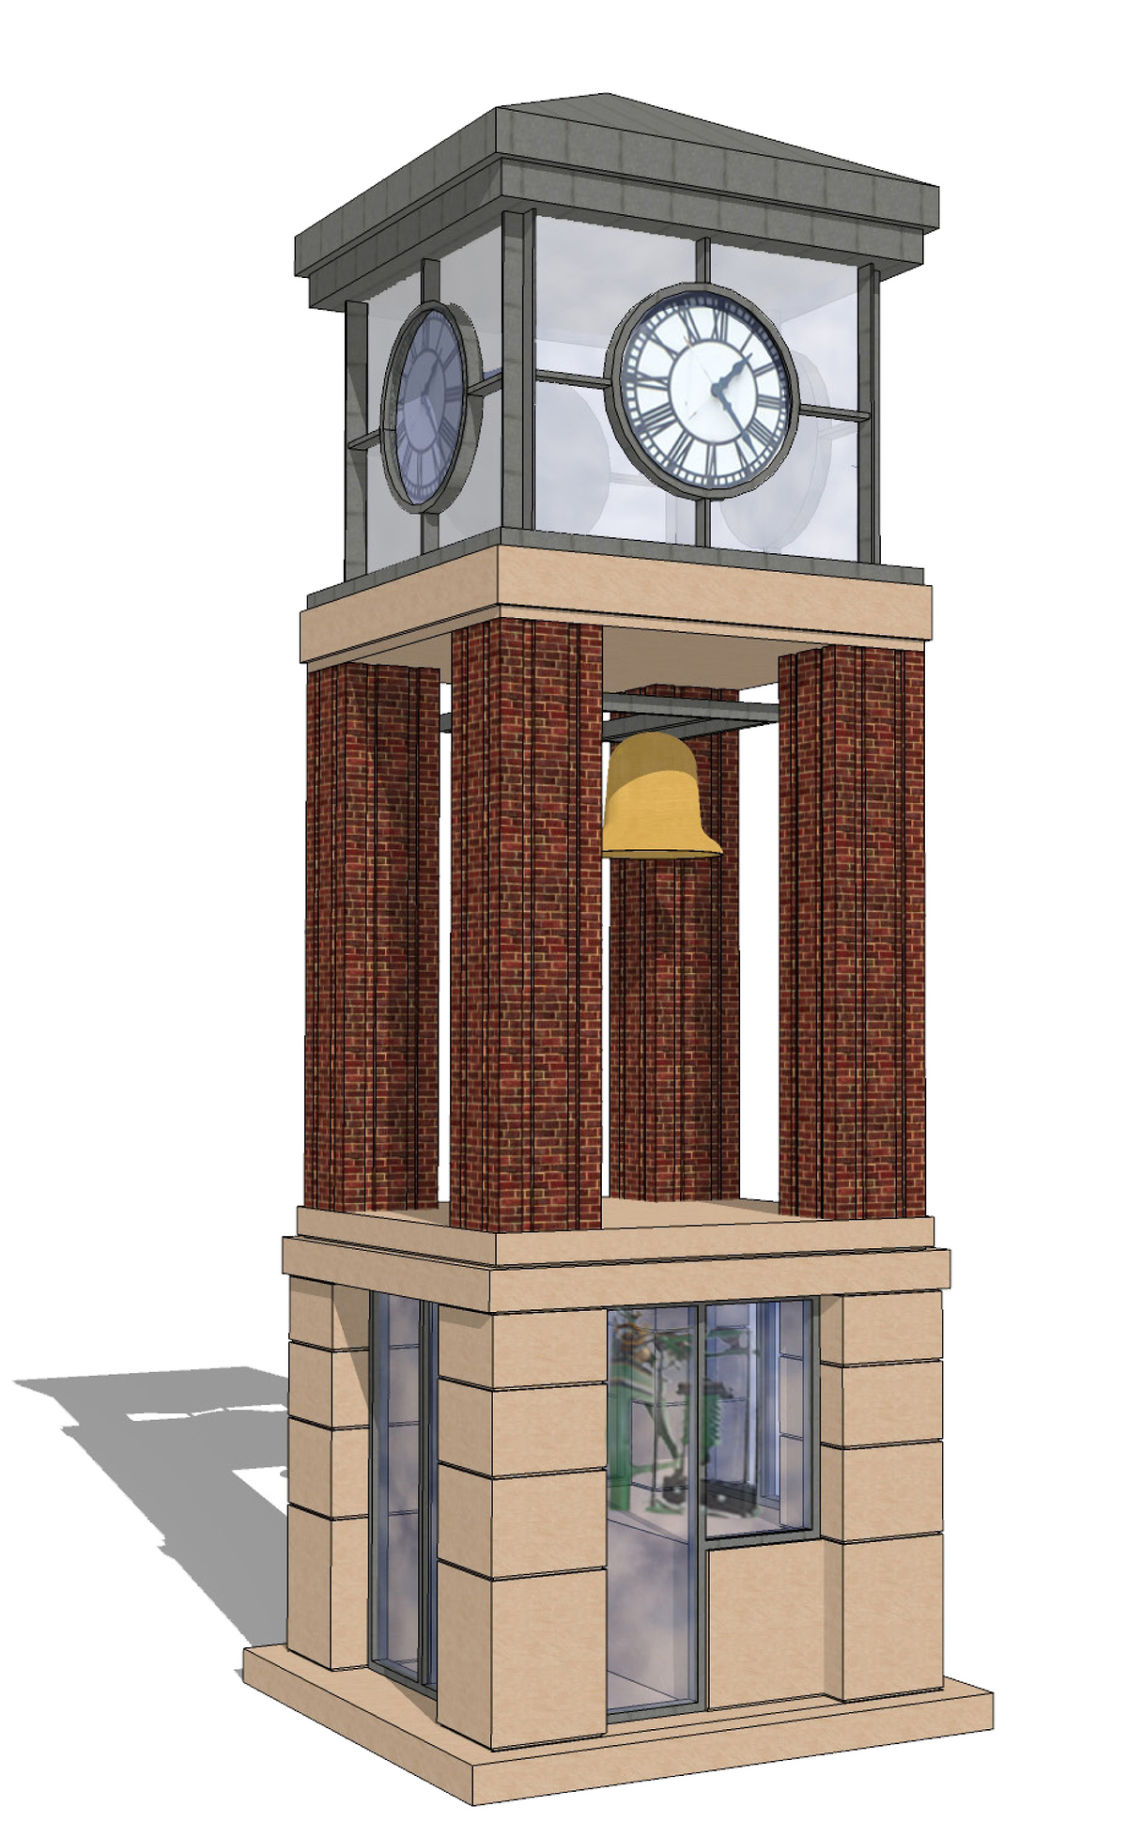 Proposed Clock Tower